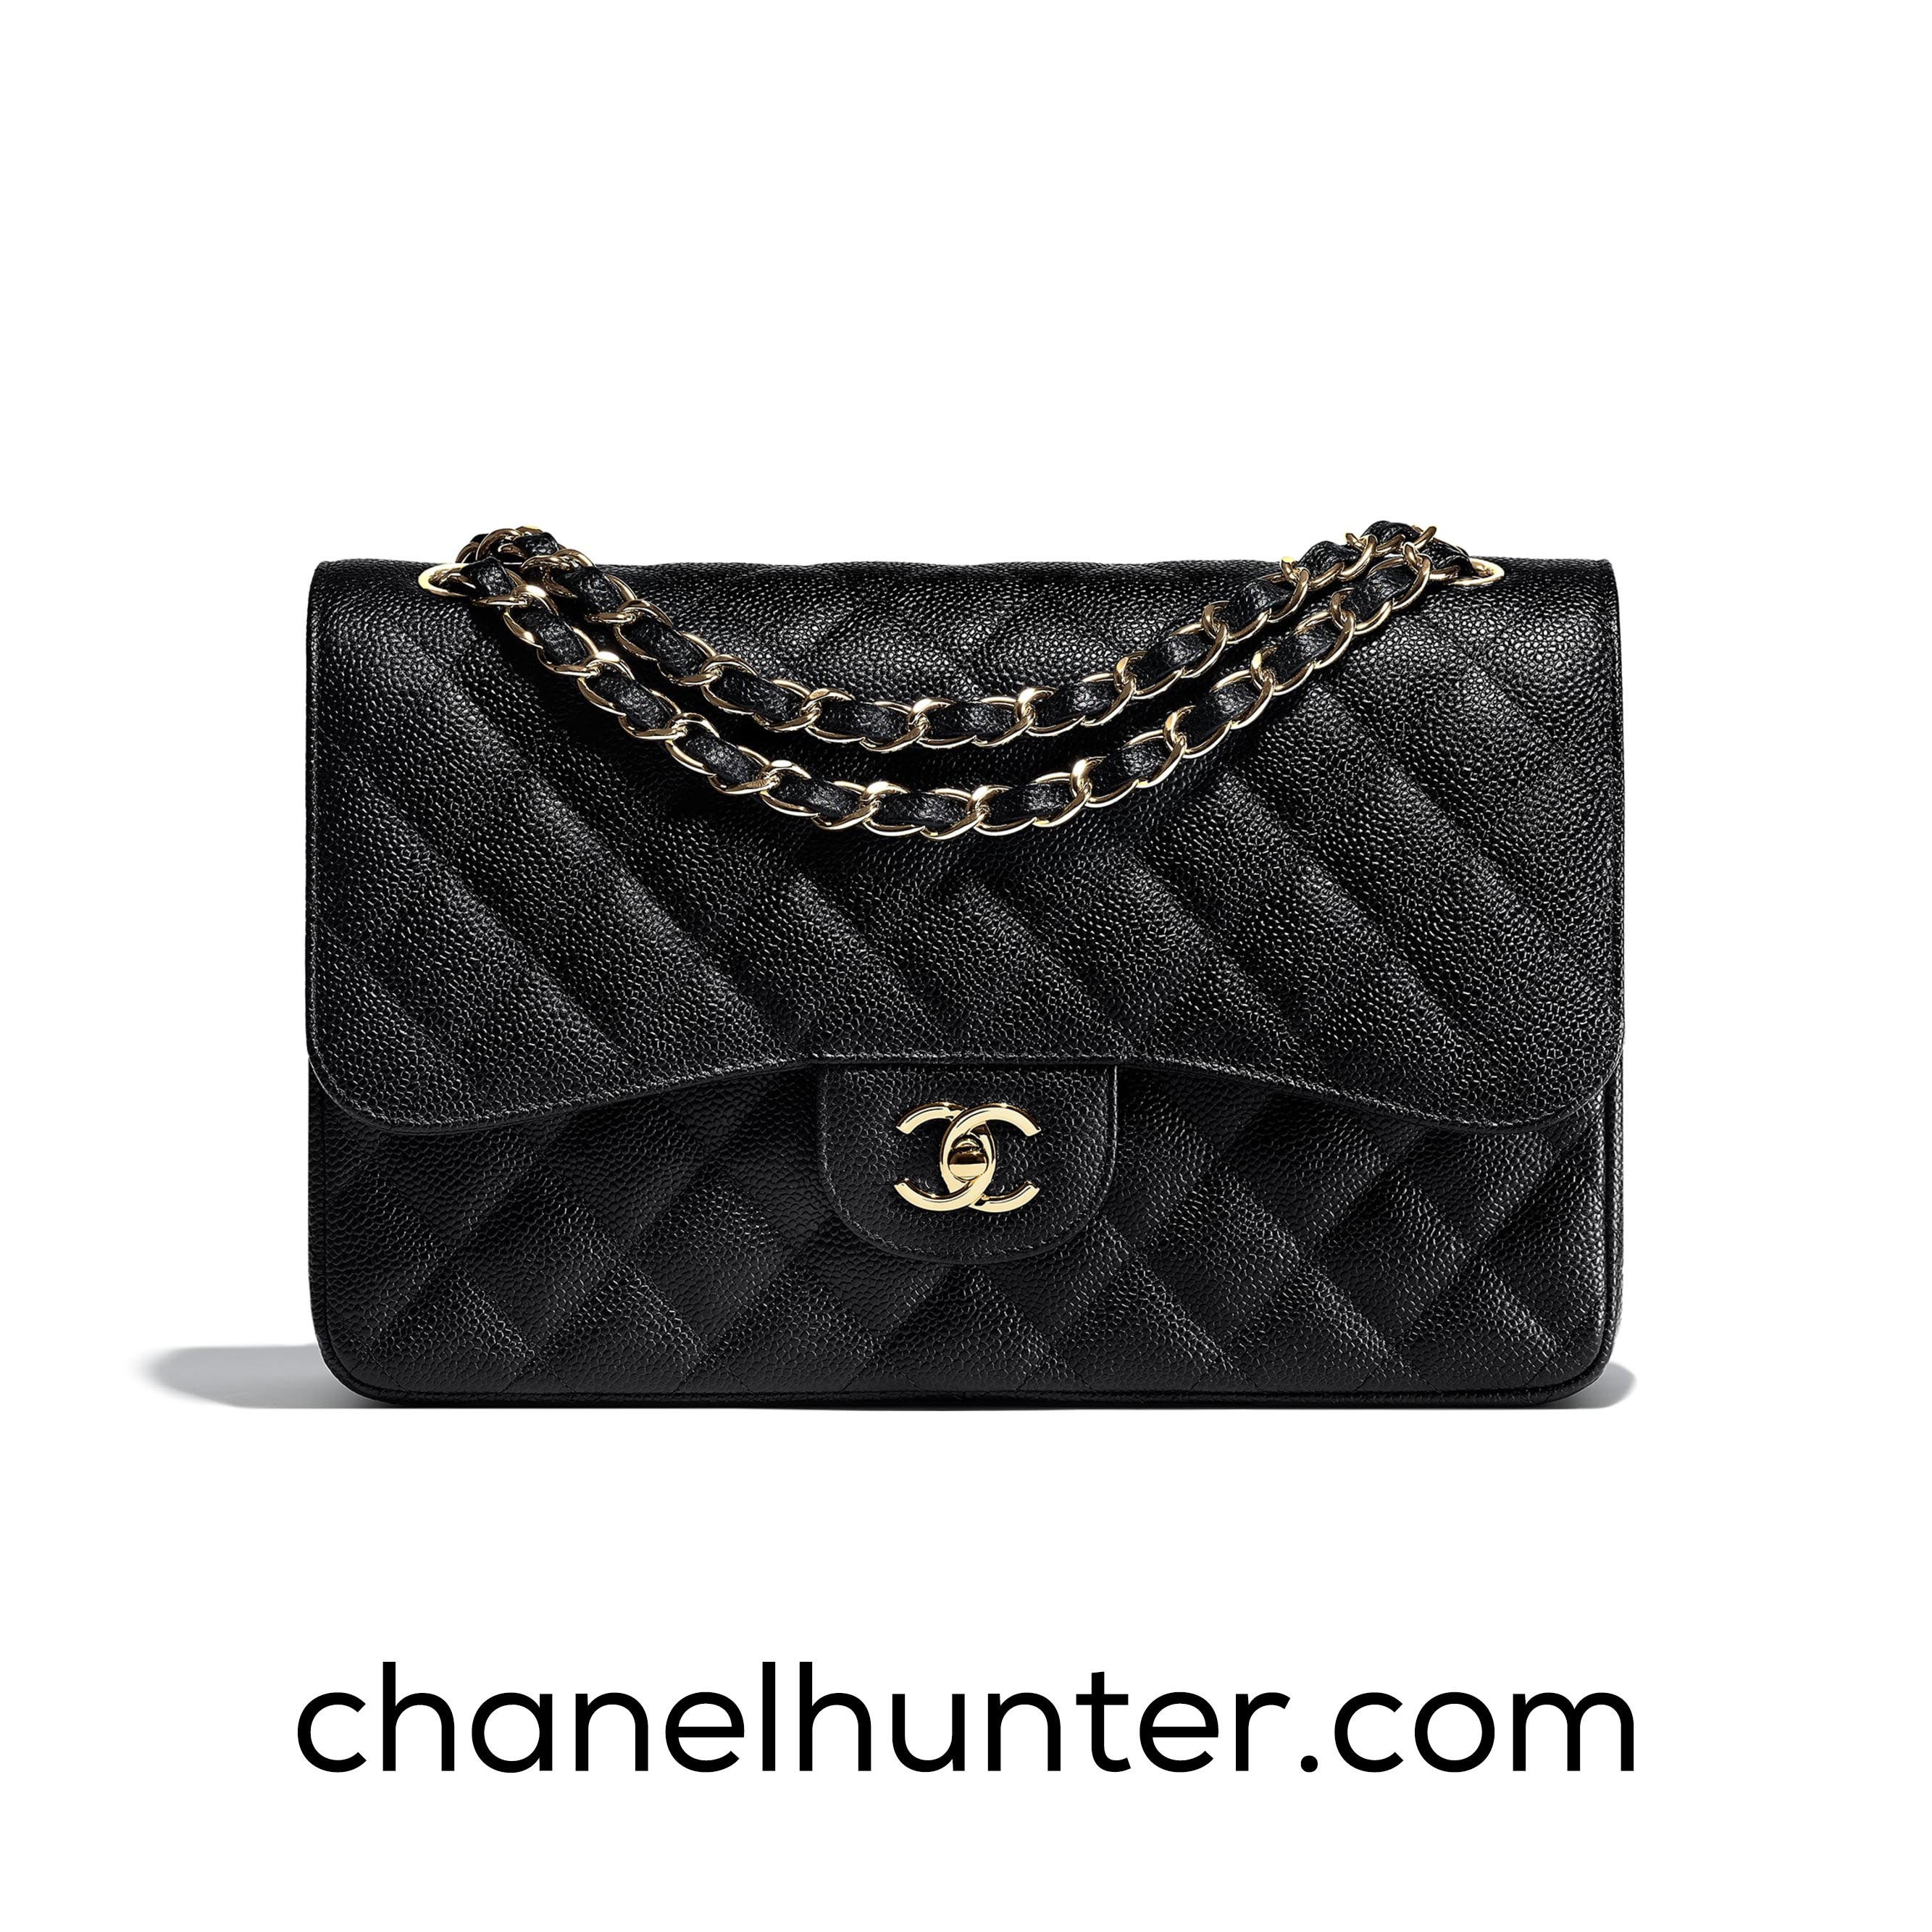 246d190dad2 Where can I buy a replica of a Chanel bag  - Quora